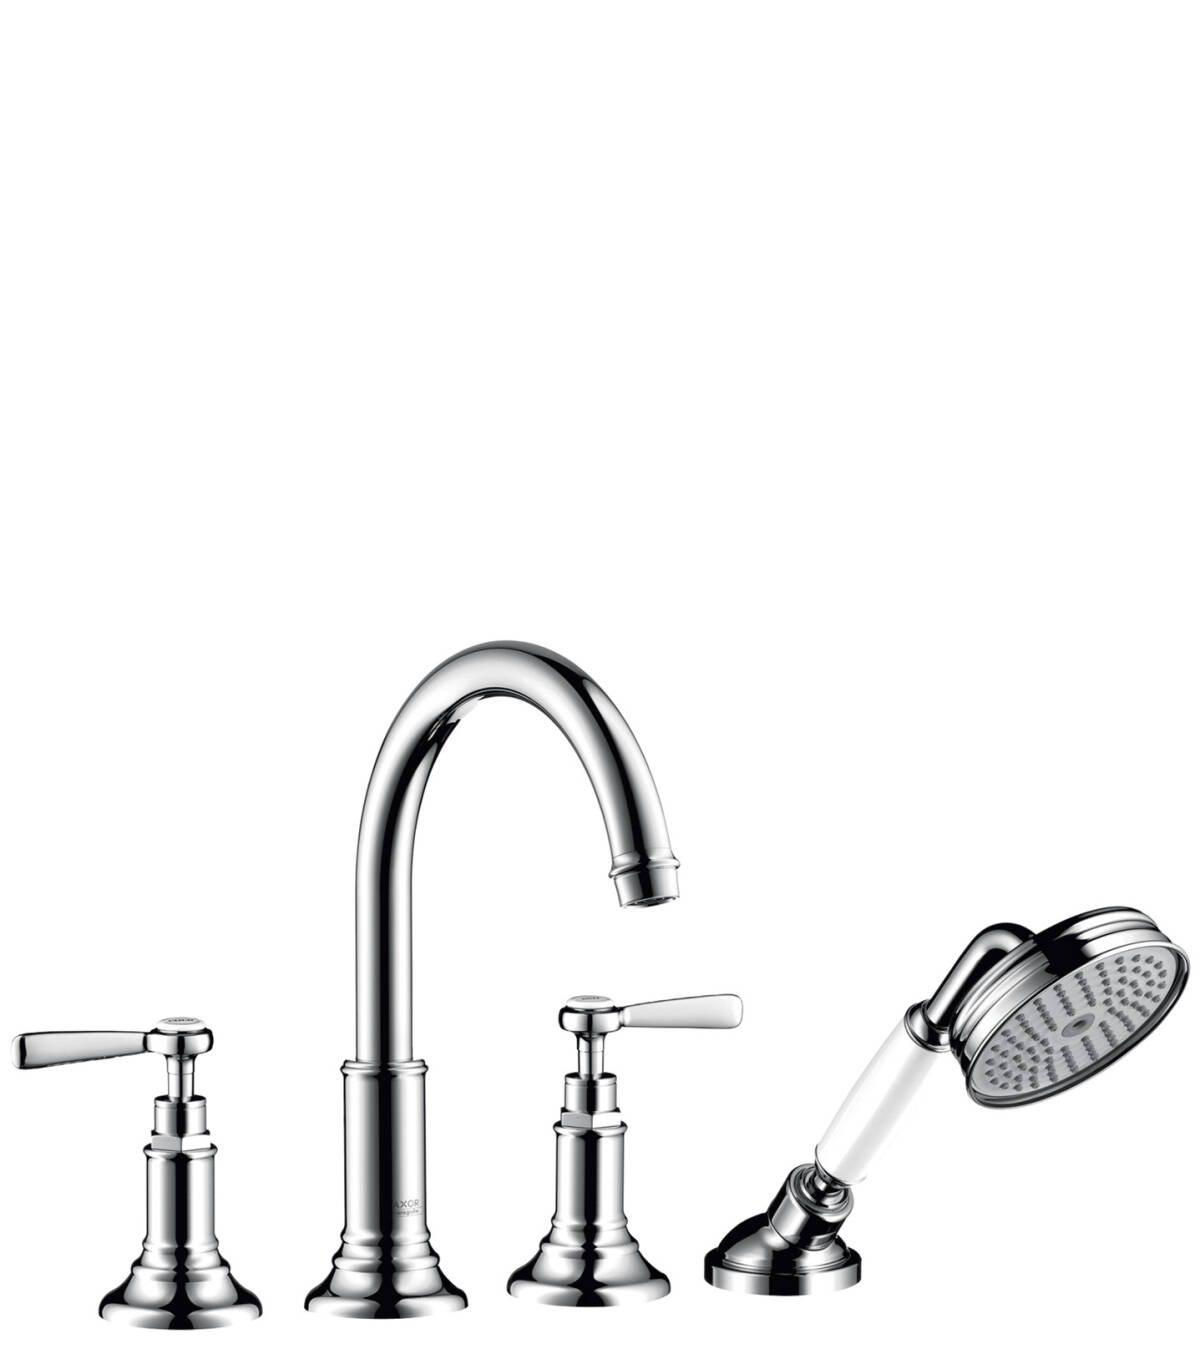 4-hole tile mounted bath mixer with lever handles, Chrome, 16554000